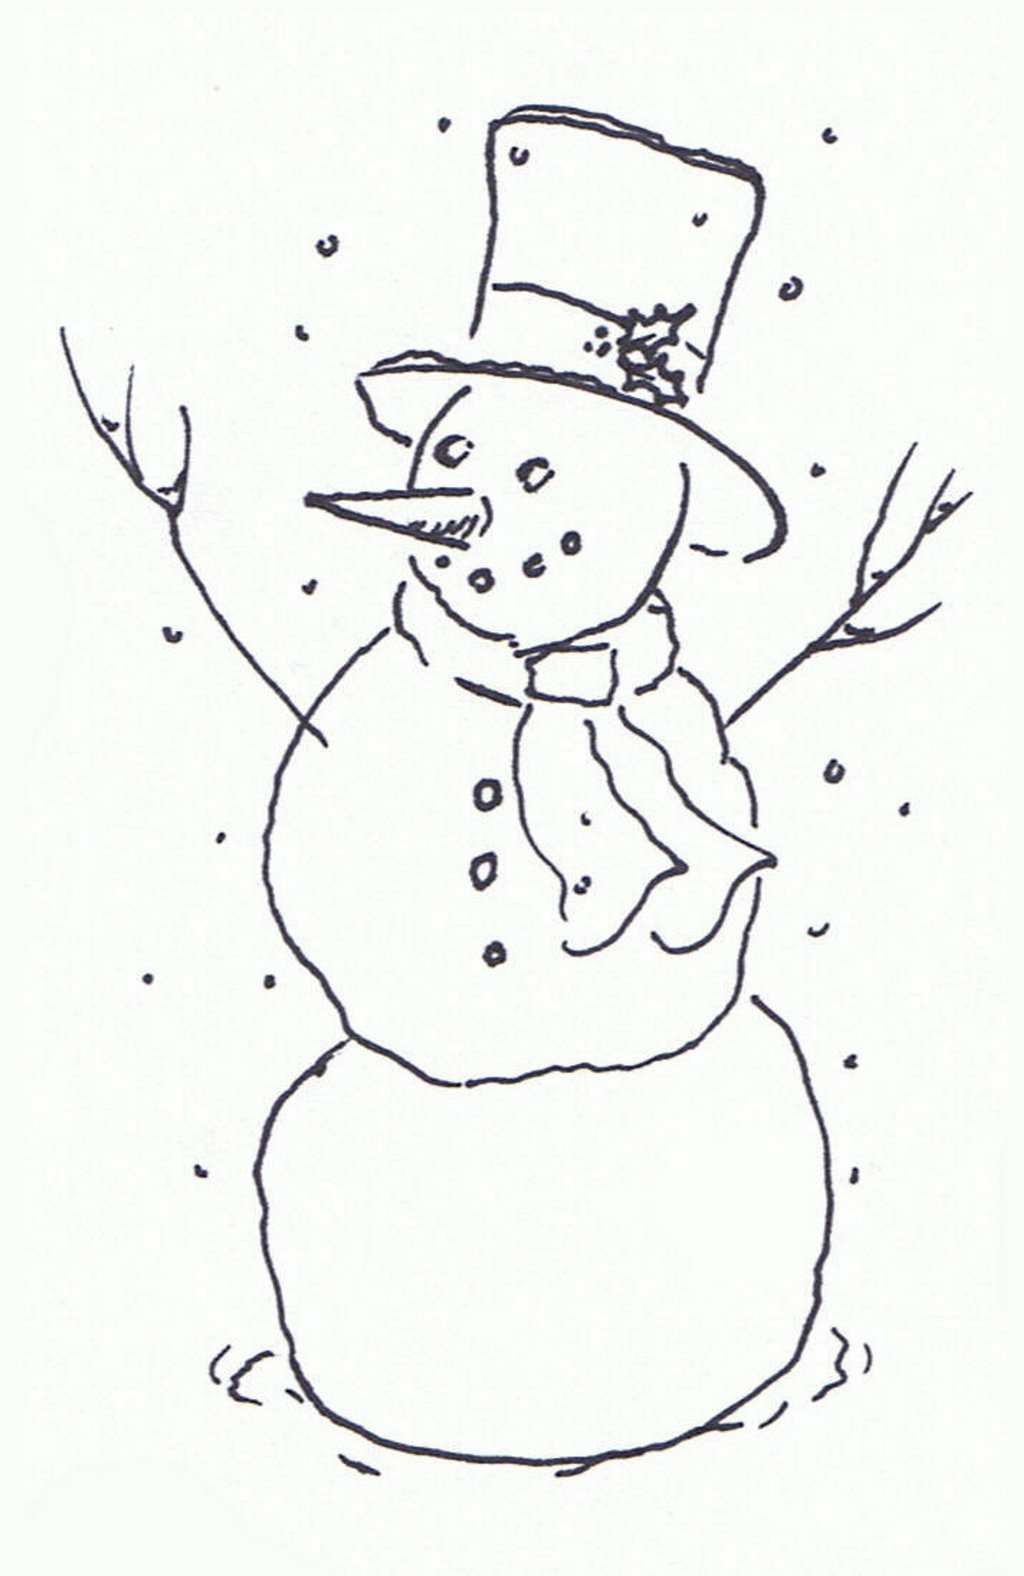 Snowman Black And White Christmas Gift Clipart#2052189.